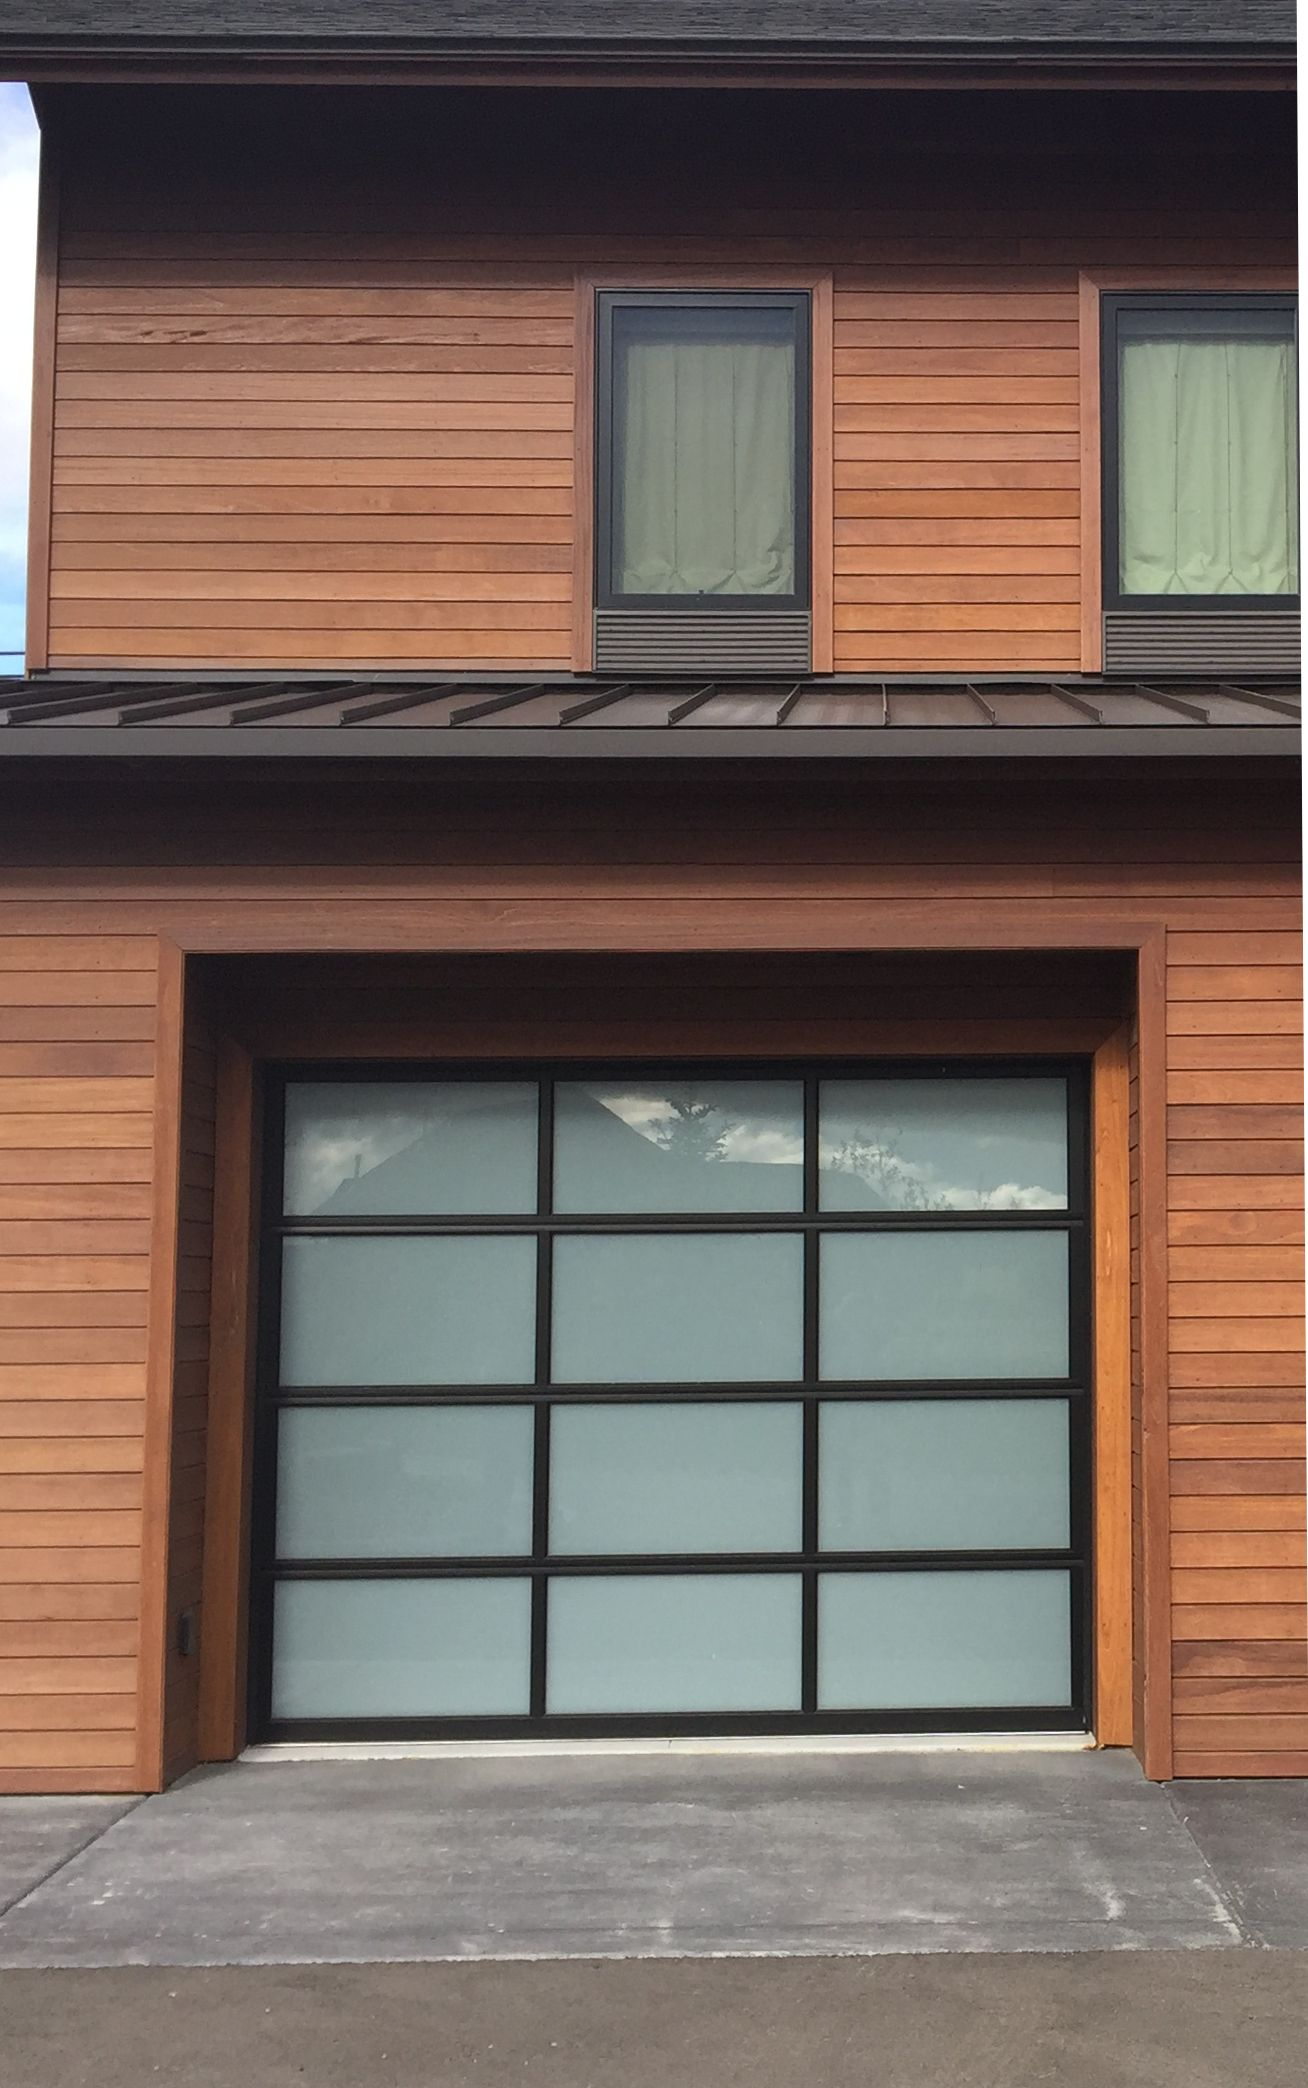 Glass Garage Door Design With Batu Wood Siding Provided By